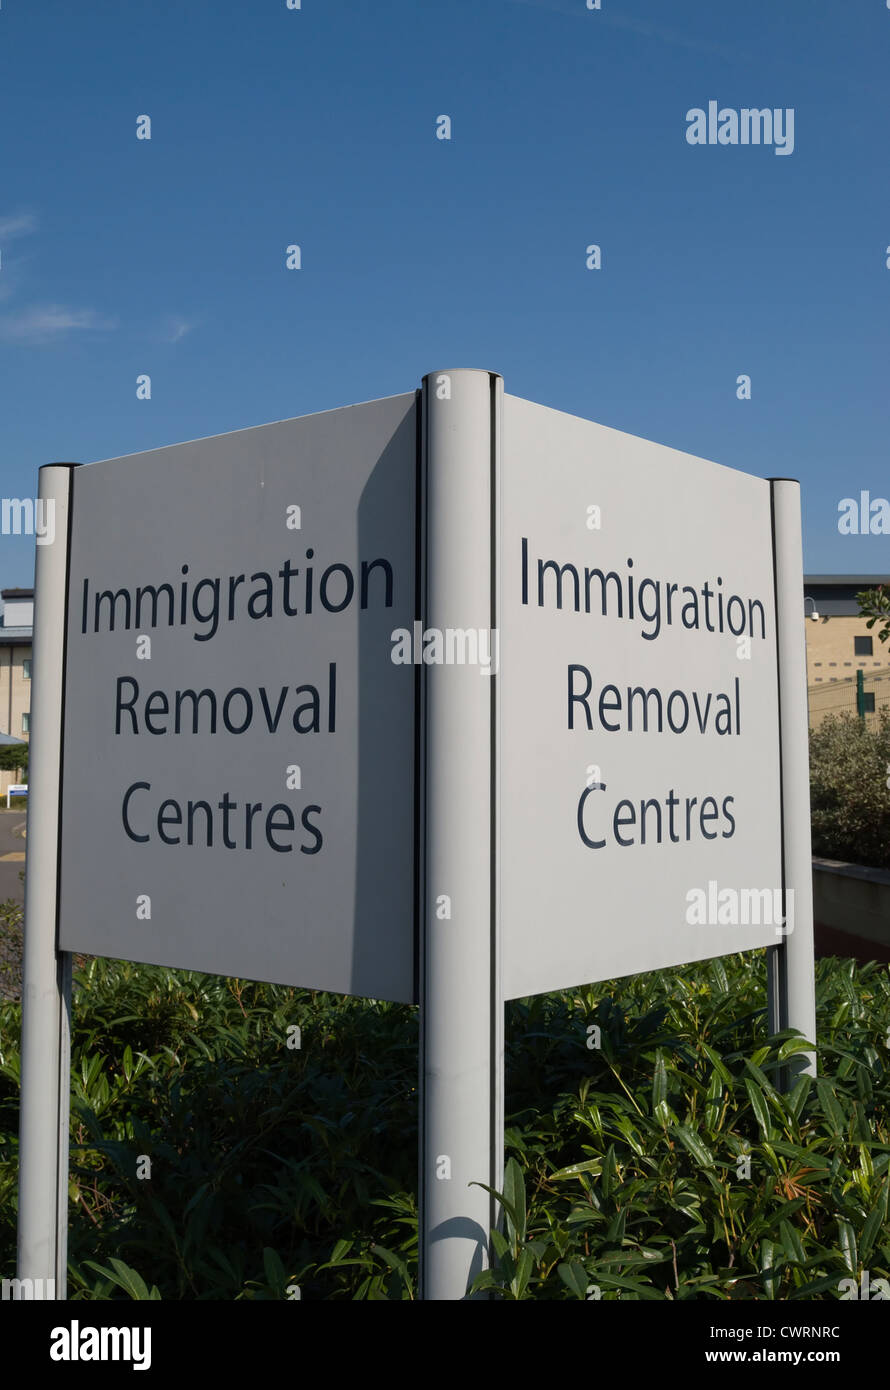 double sided sign for immigration removal centres at colnbrook immigration removal centre, harmondsworth, near heathrow, - Stock Image